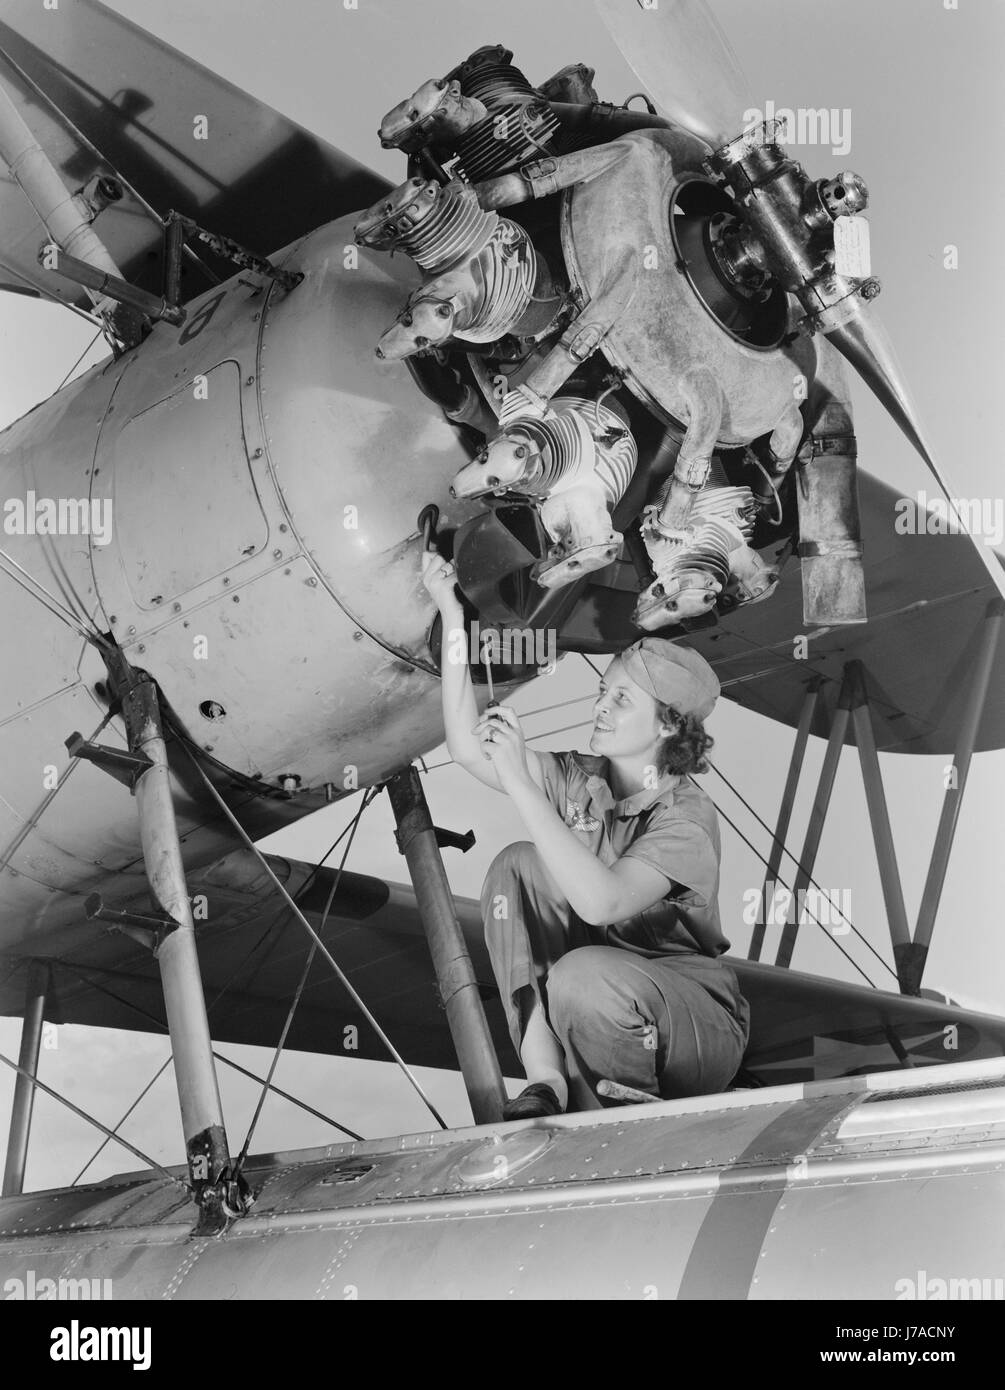 A top-notch mechanic expertly rebuilds airplane engines, 19442. - Stock Image